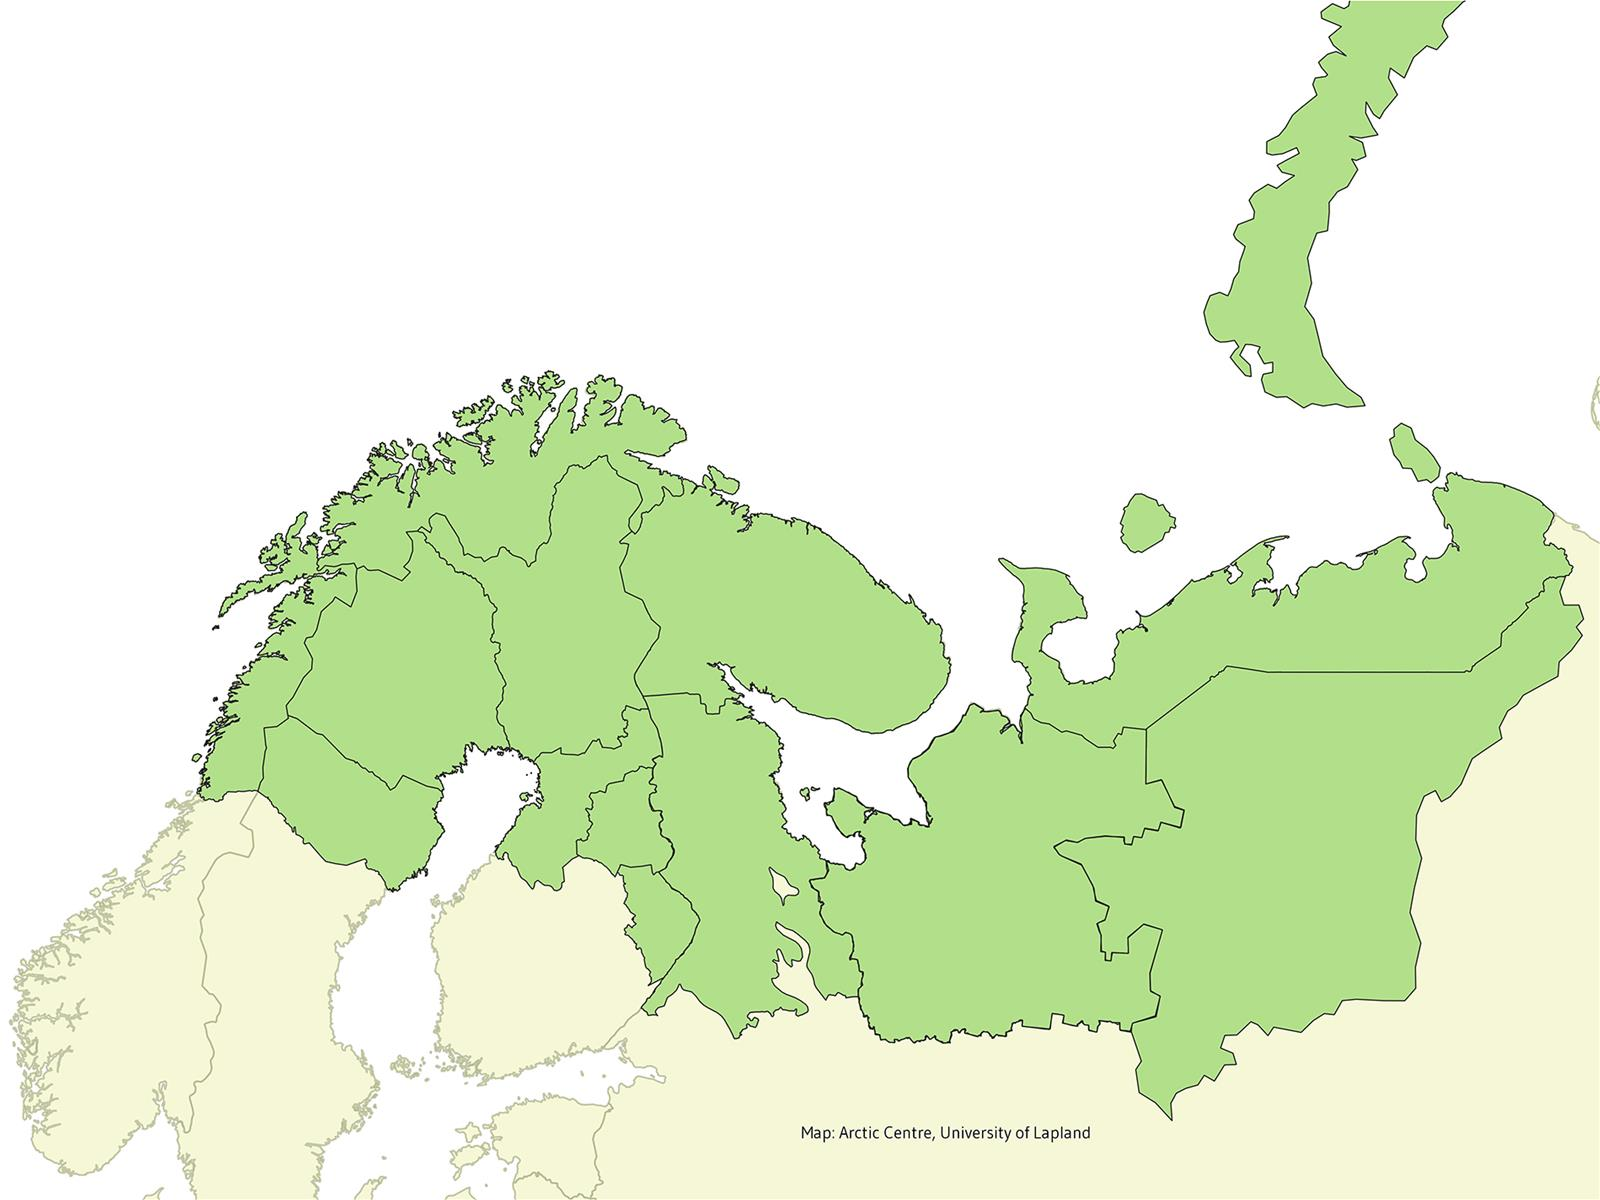 beac-regions-plain-greener.jpg